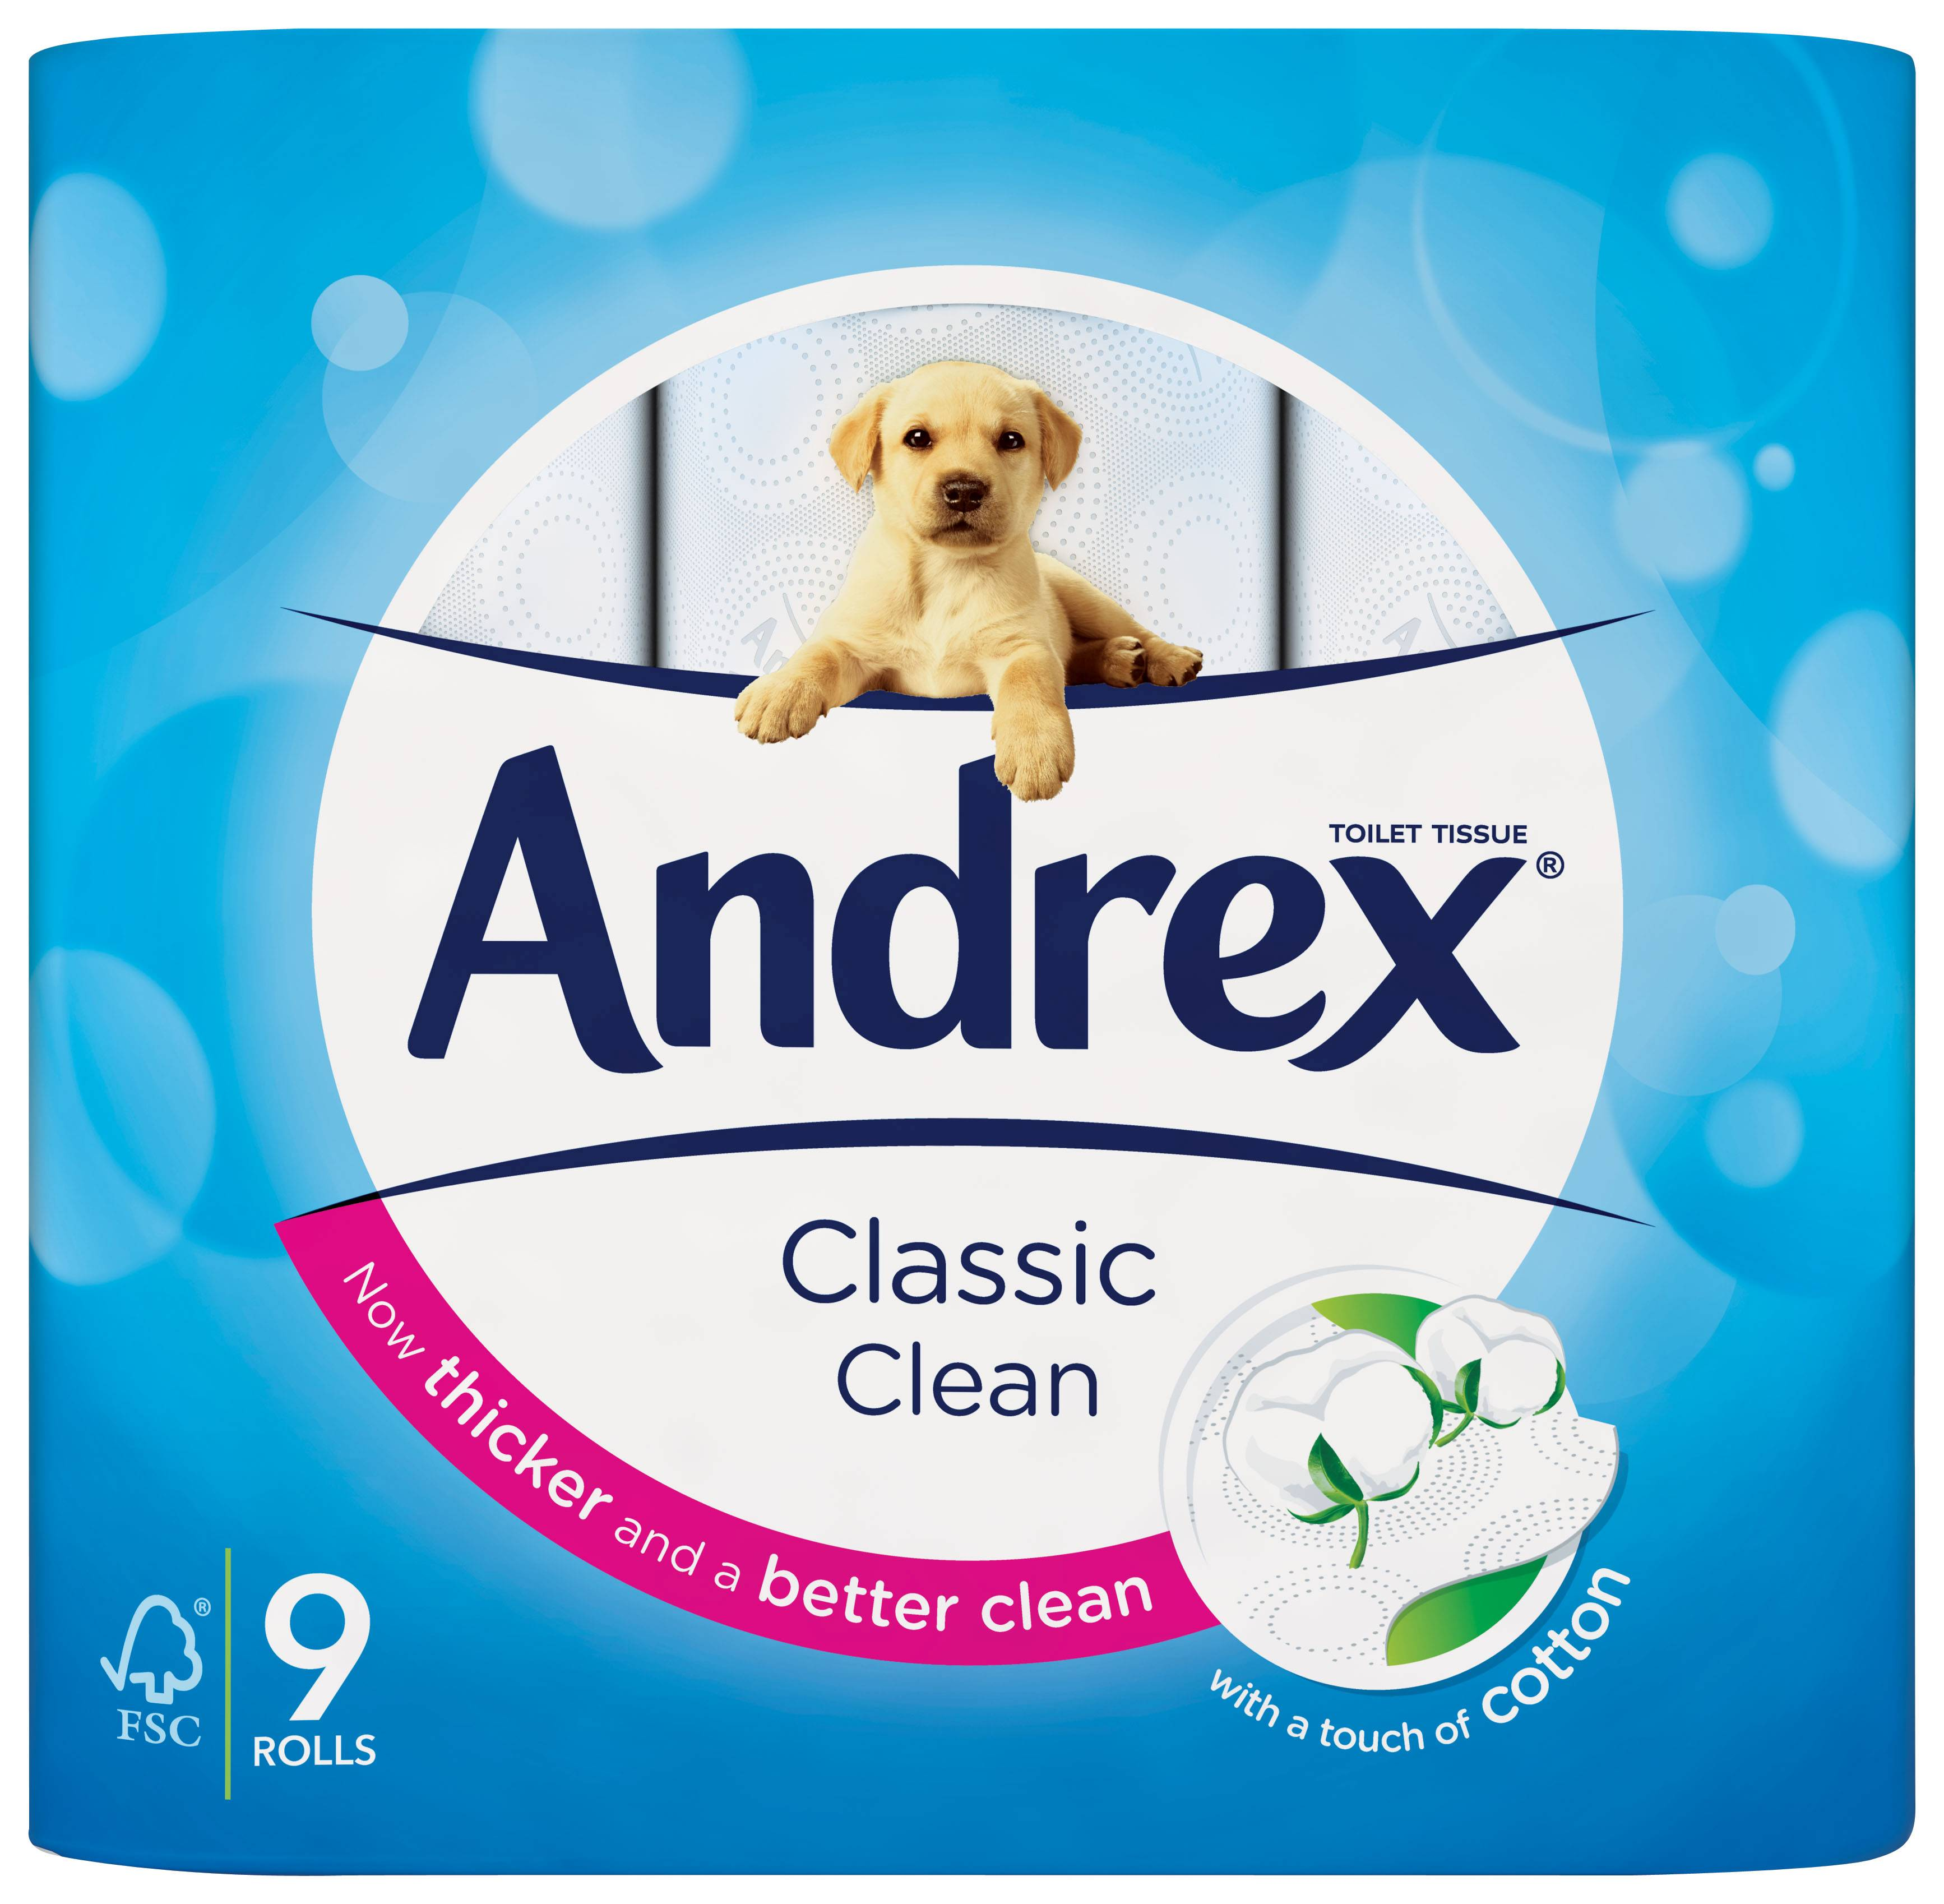 Andrex Launches Classic Clean